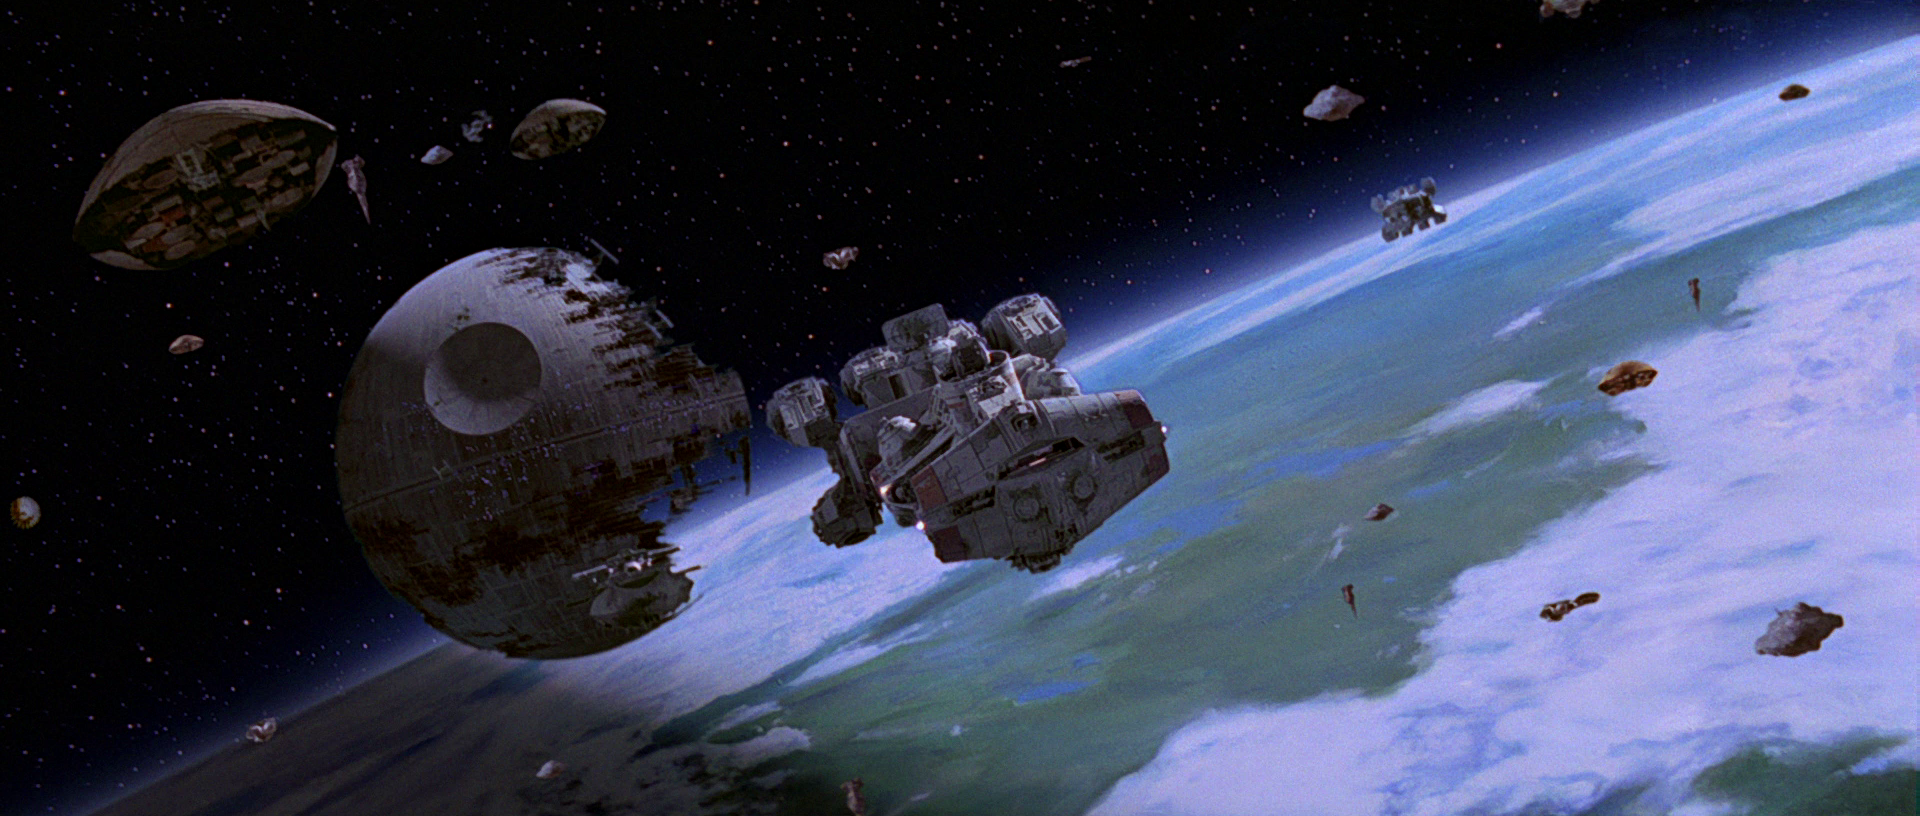 Big Space Battles And How Different Star Wars Episodes Handle Them Sci Fi And Fantasy Network